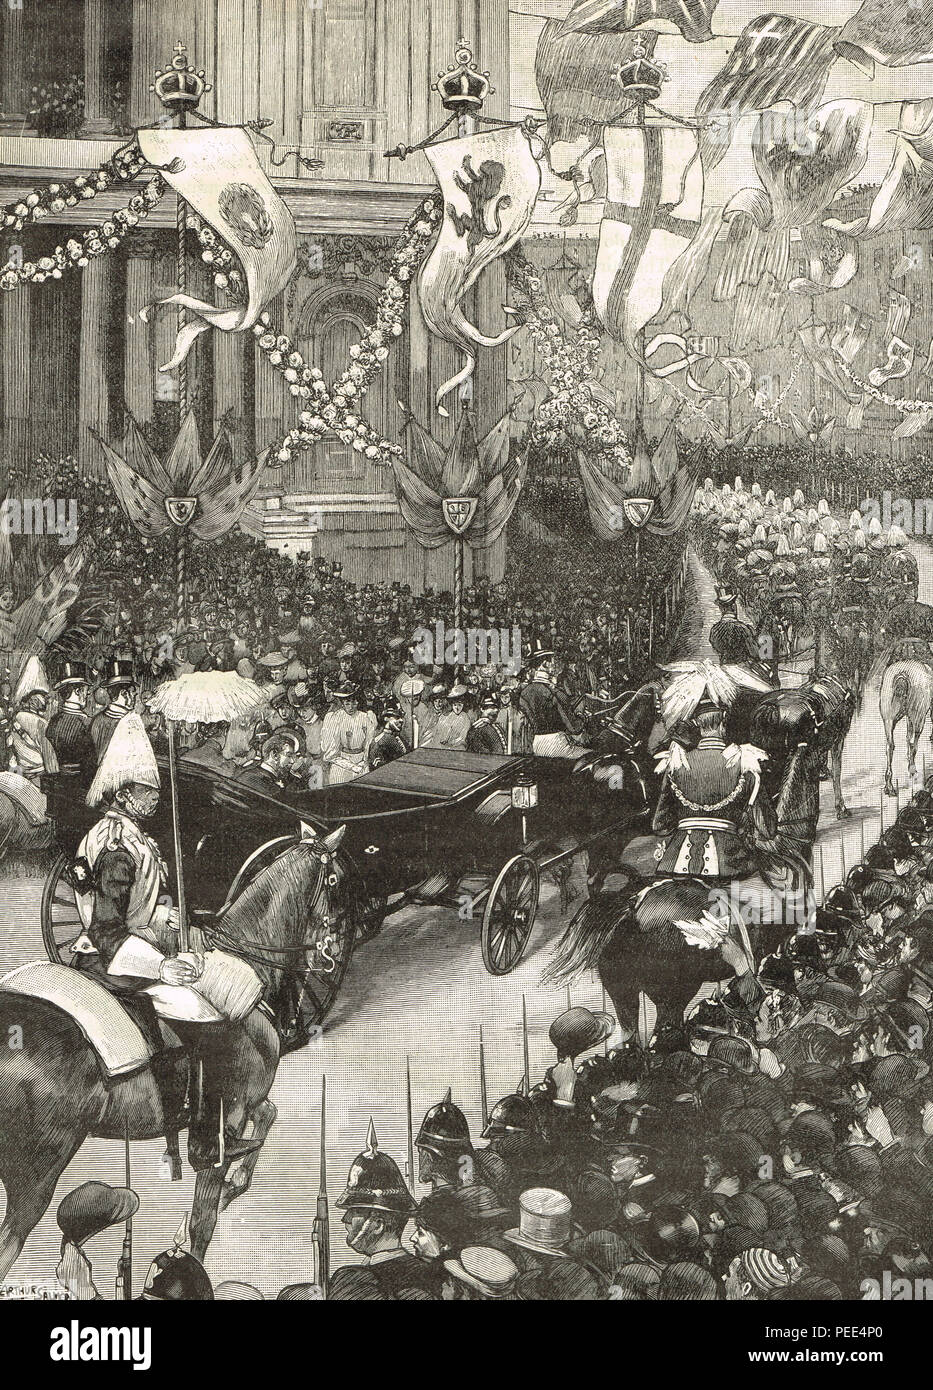 Wedding of Prince George, Duke of York, and Princess Mary of Teck.  The Royal procession passing St Paul's cathedral en route to St James' Palace, London,  6 July 1893 - Stock Image